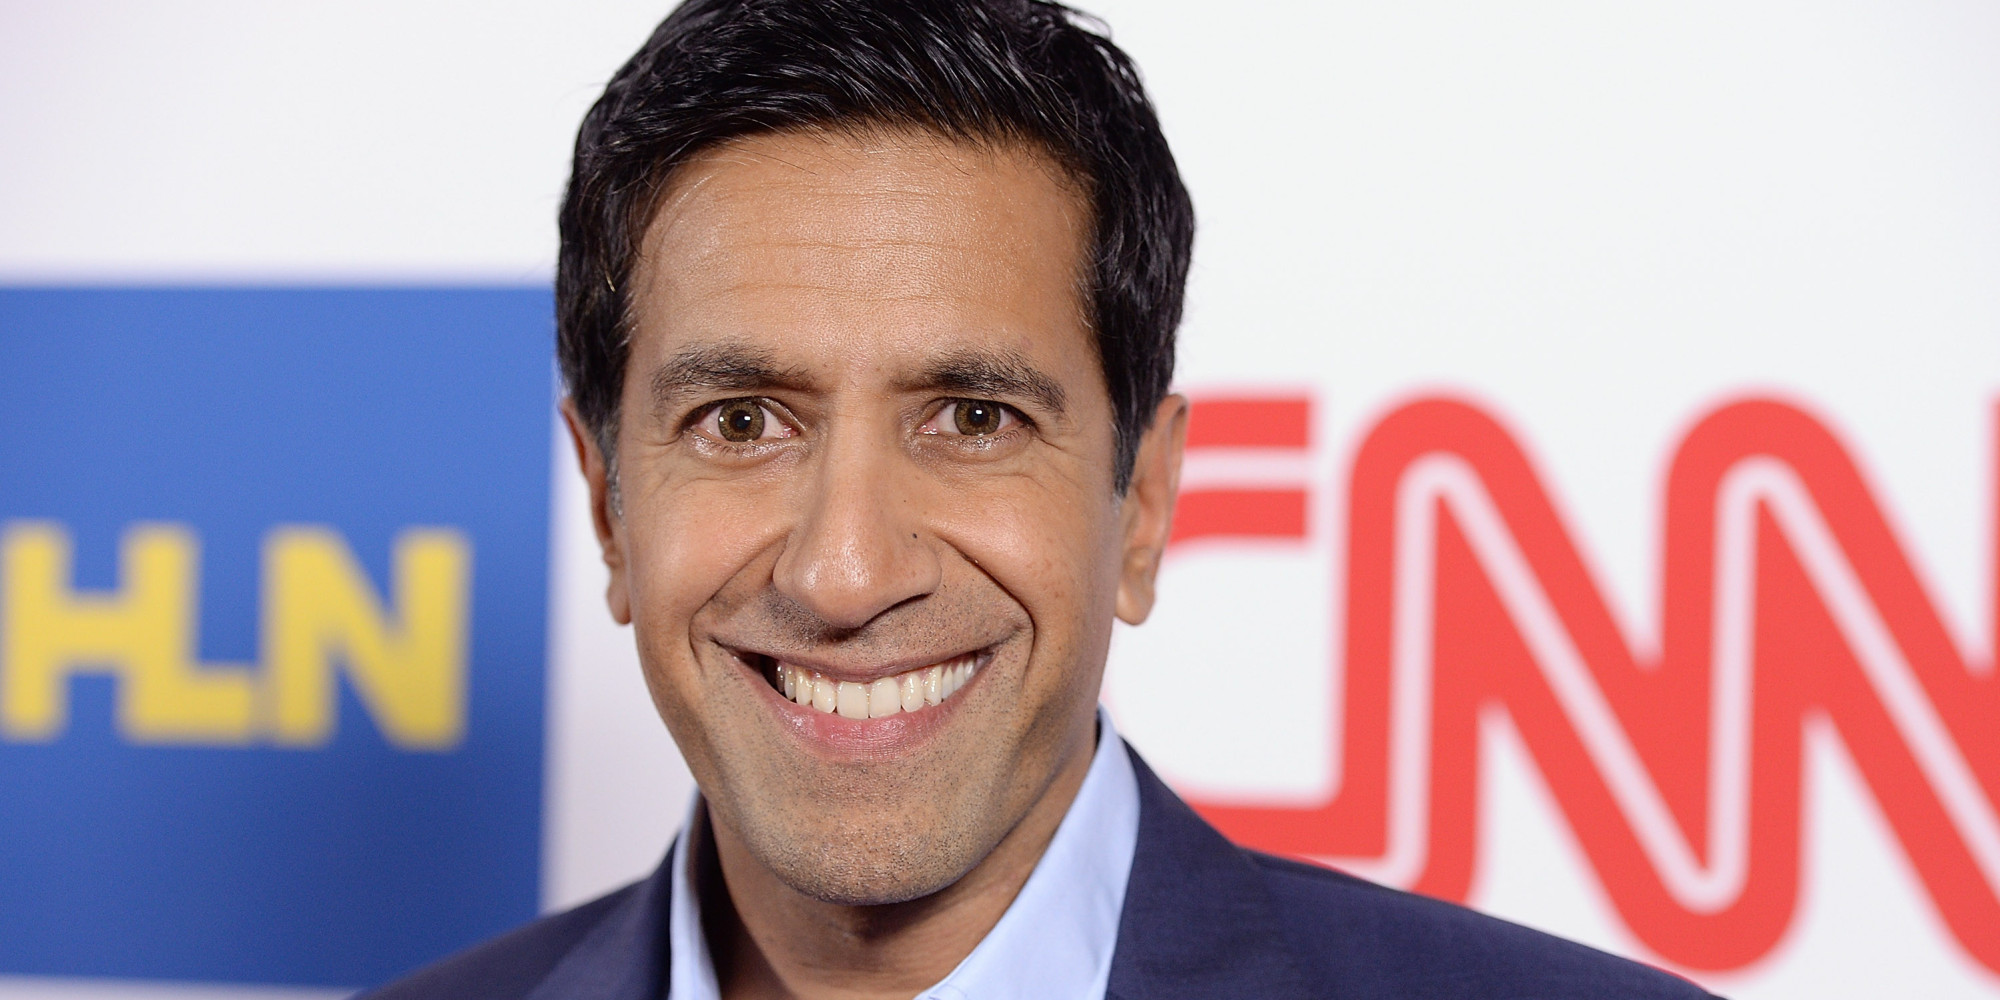 The 48-year old son of father (?) and mother Damyanti Gupta, 187 cm tall Sanjay Gupta in 2018 photo